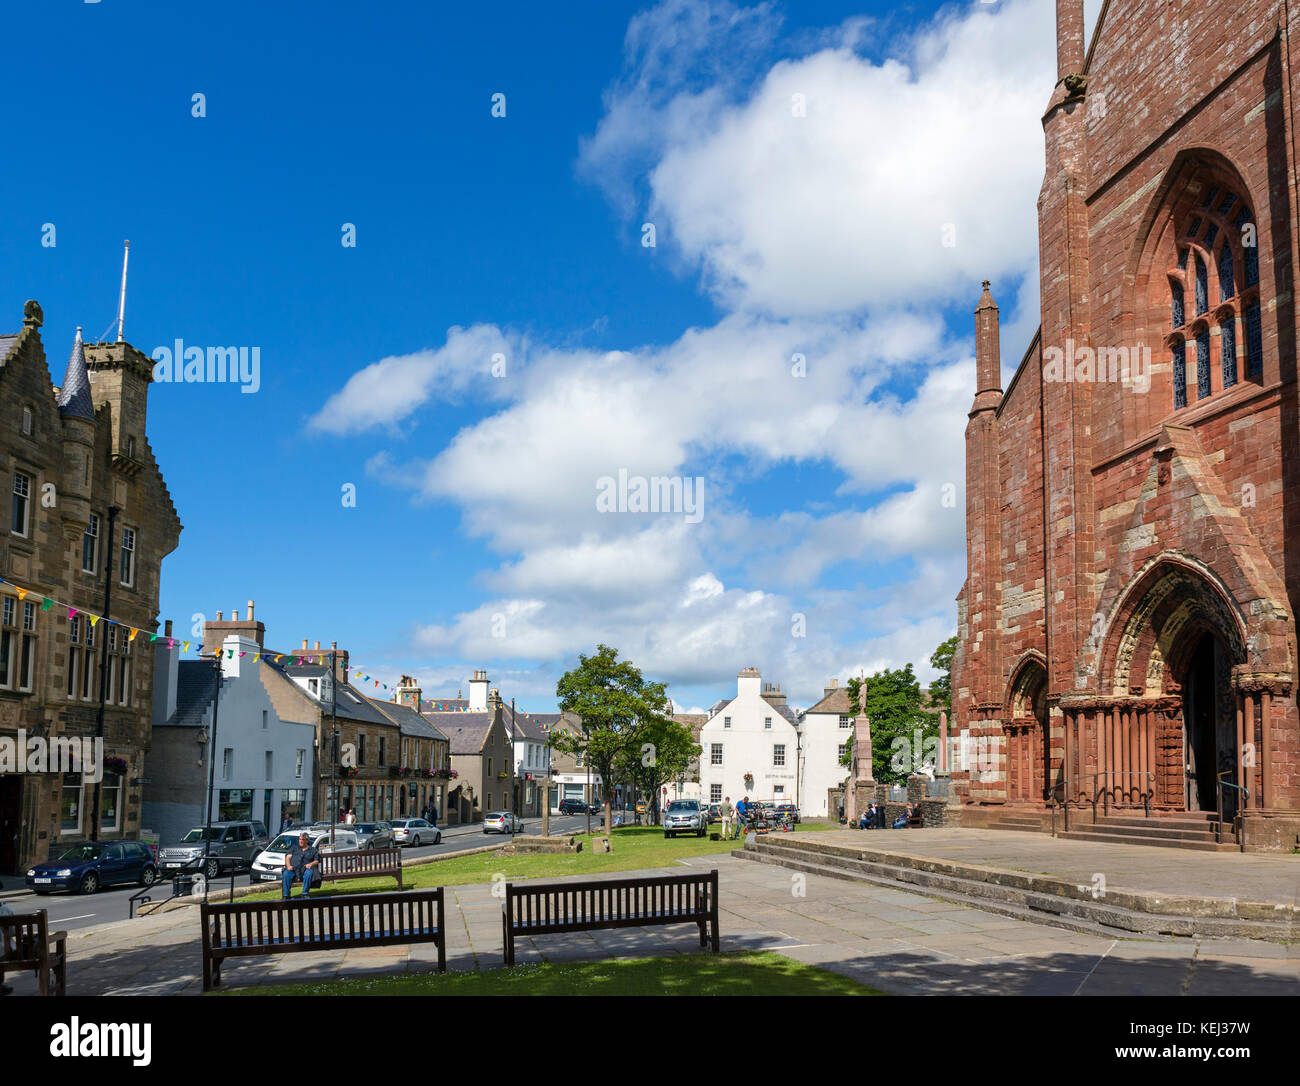 Broad Street in the town centre with St Magnus Cathedral to the right, Kirkwall, Mainland, Orkney, Scotland, UK - Stock Image